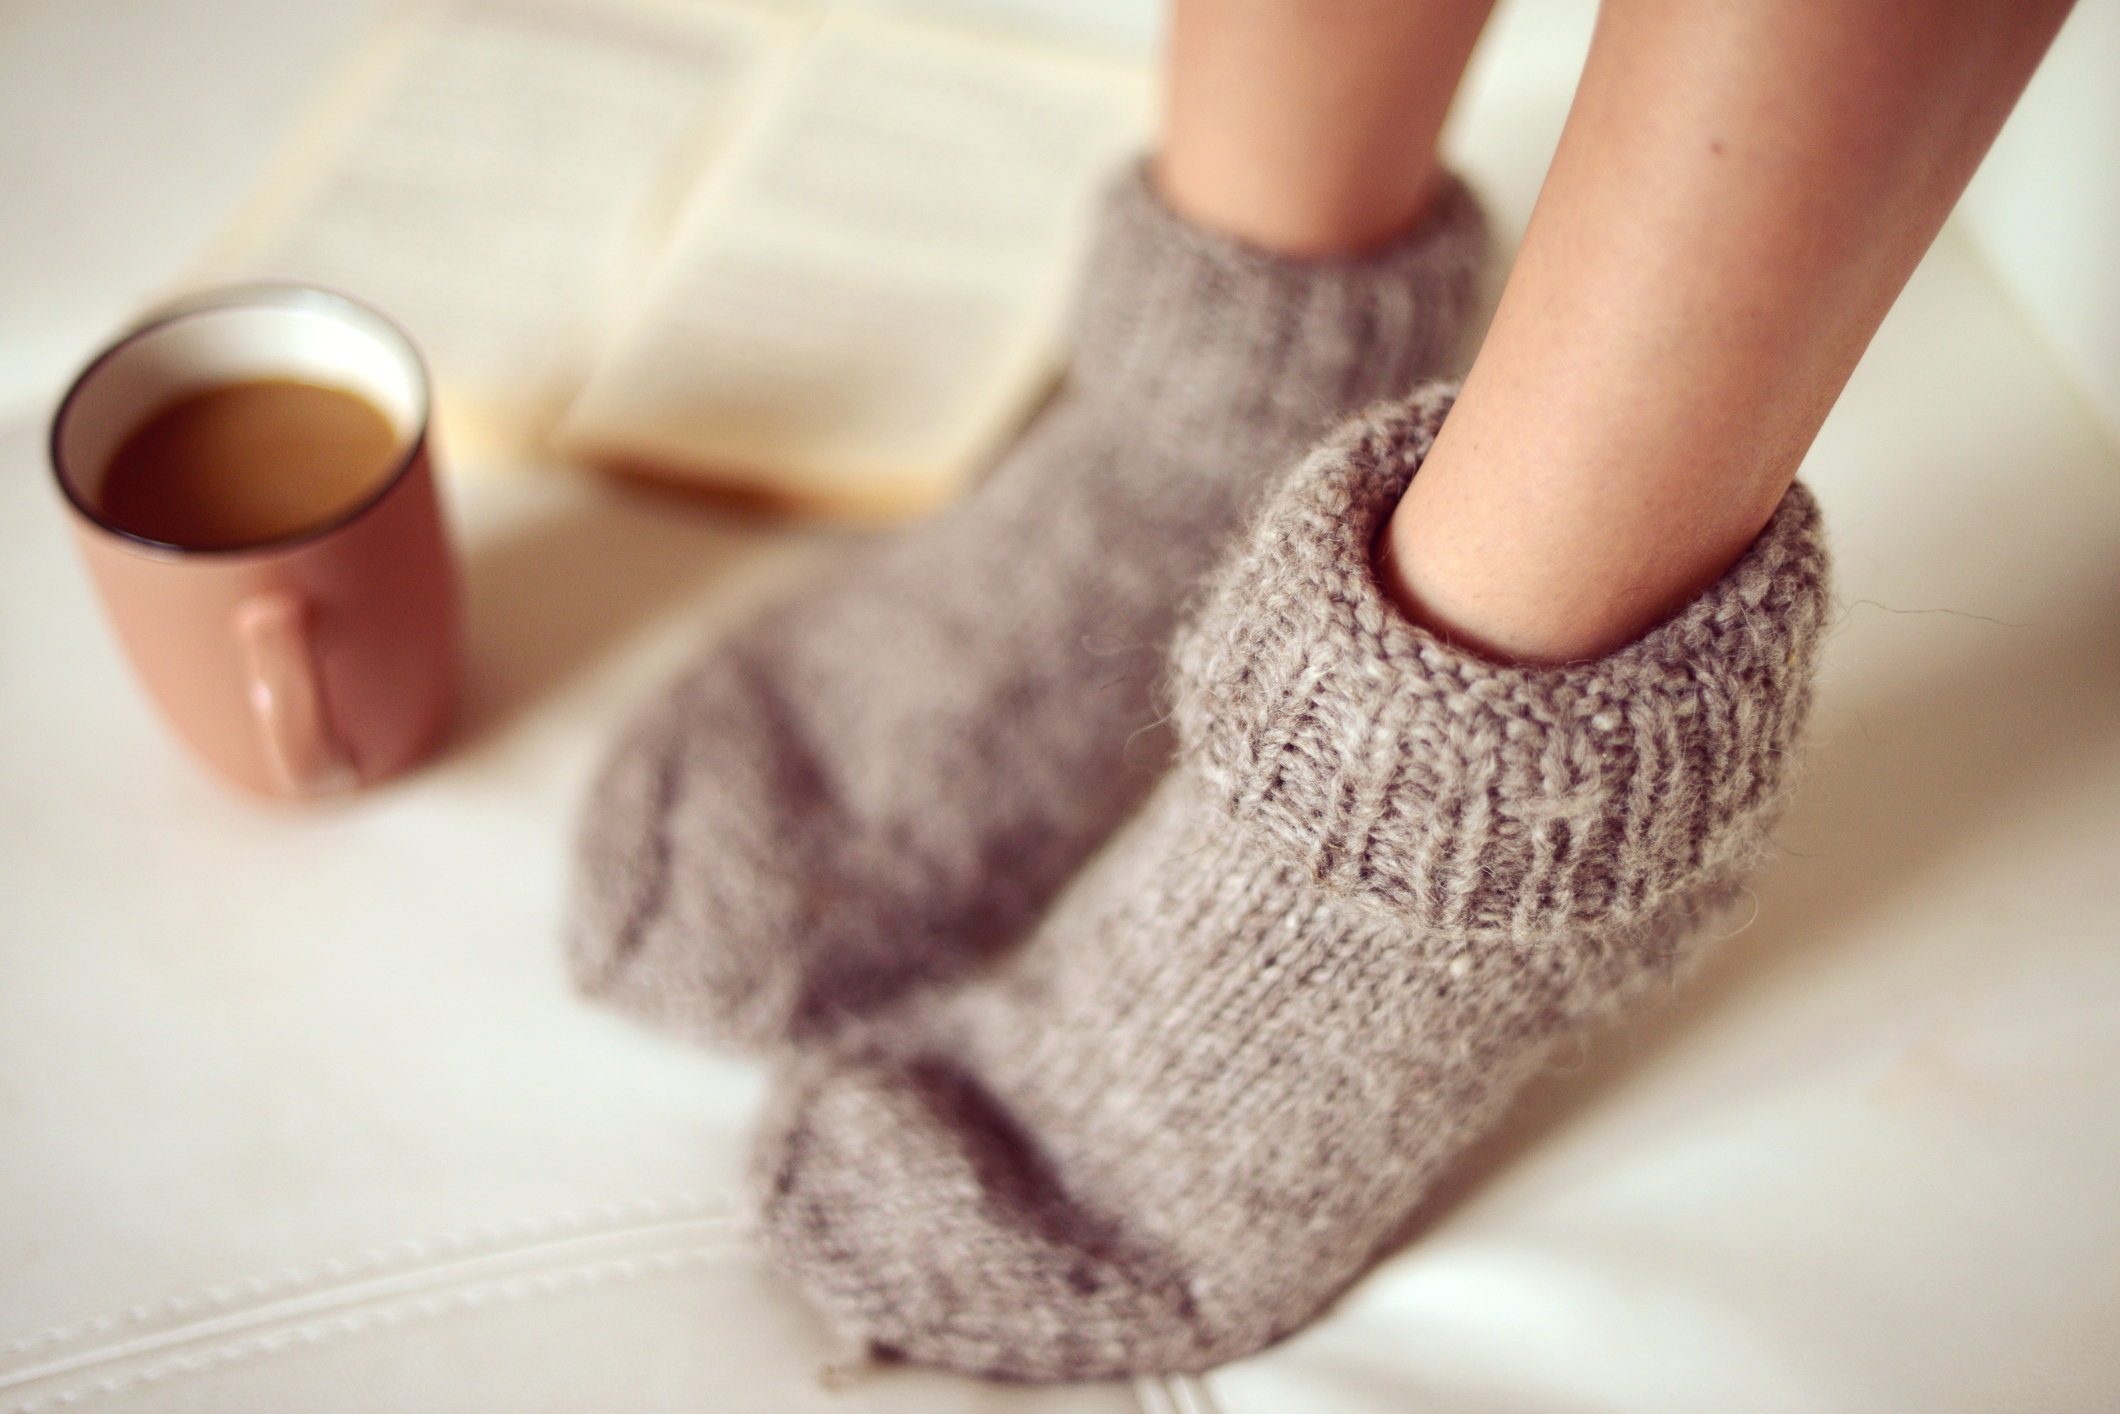 female legs in woolen socks close up